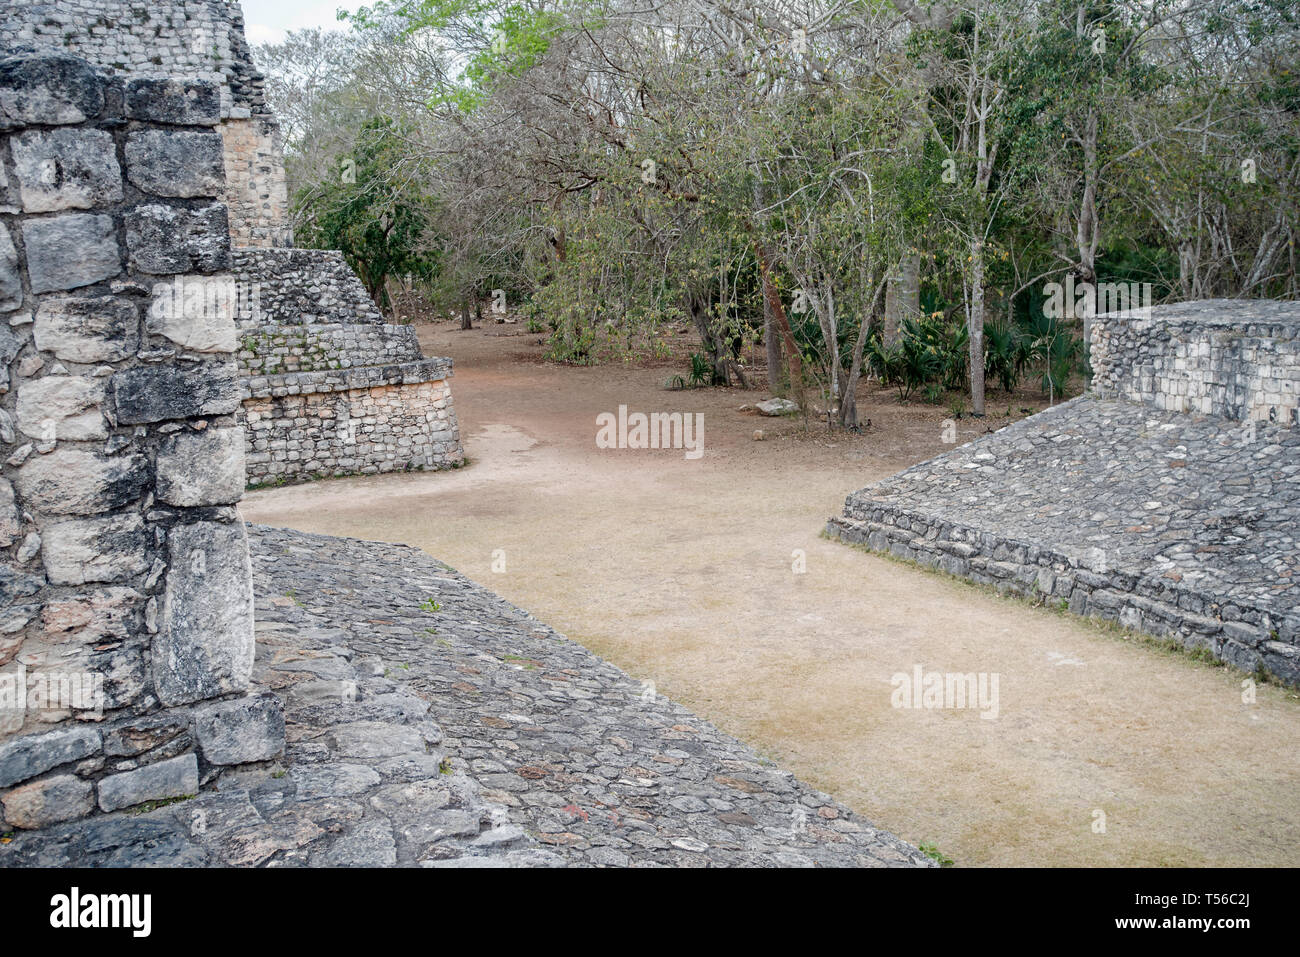 Mayan Ballcourt at Ek Balam - Stock Image